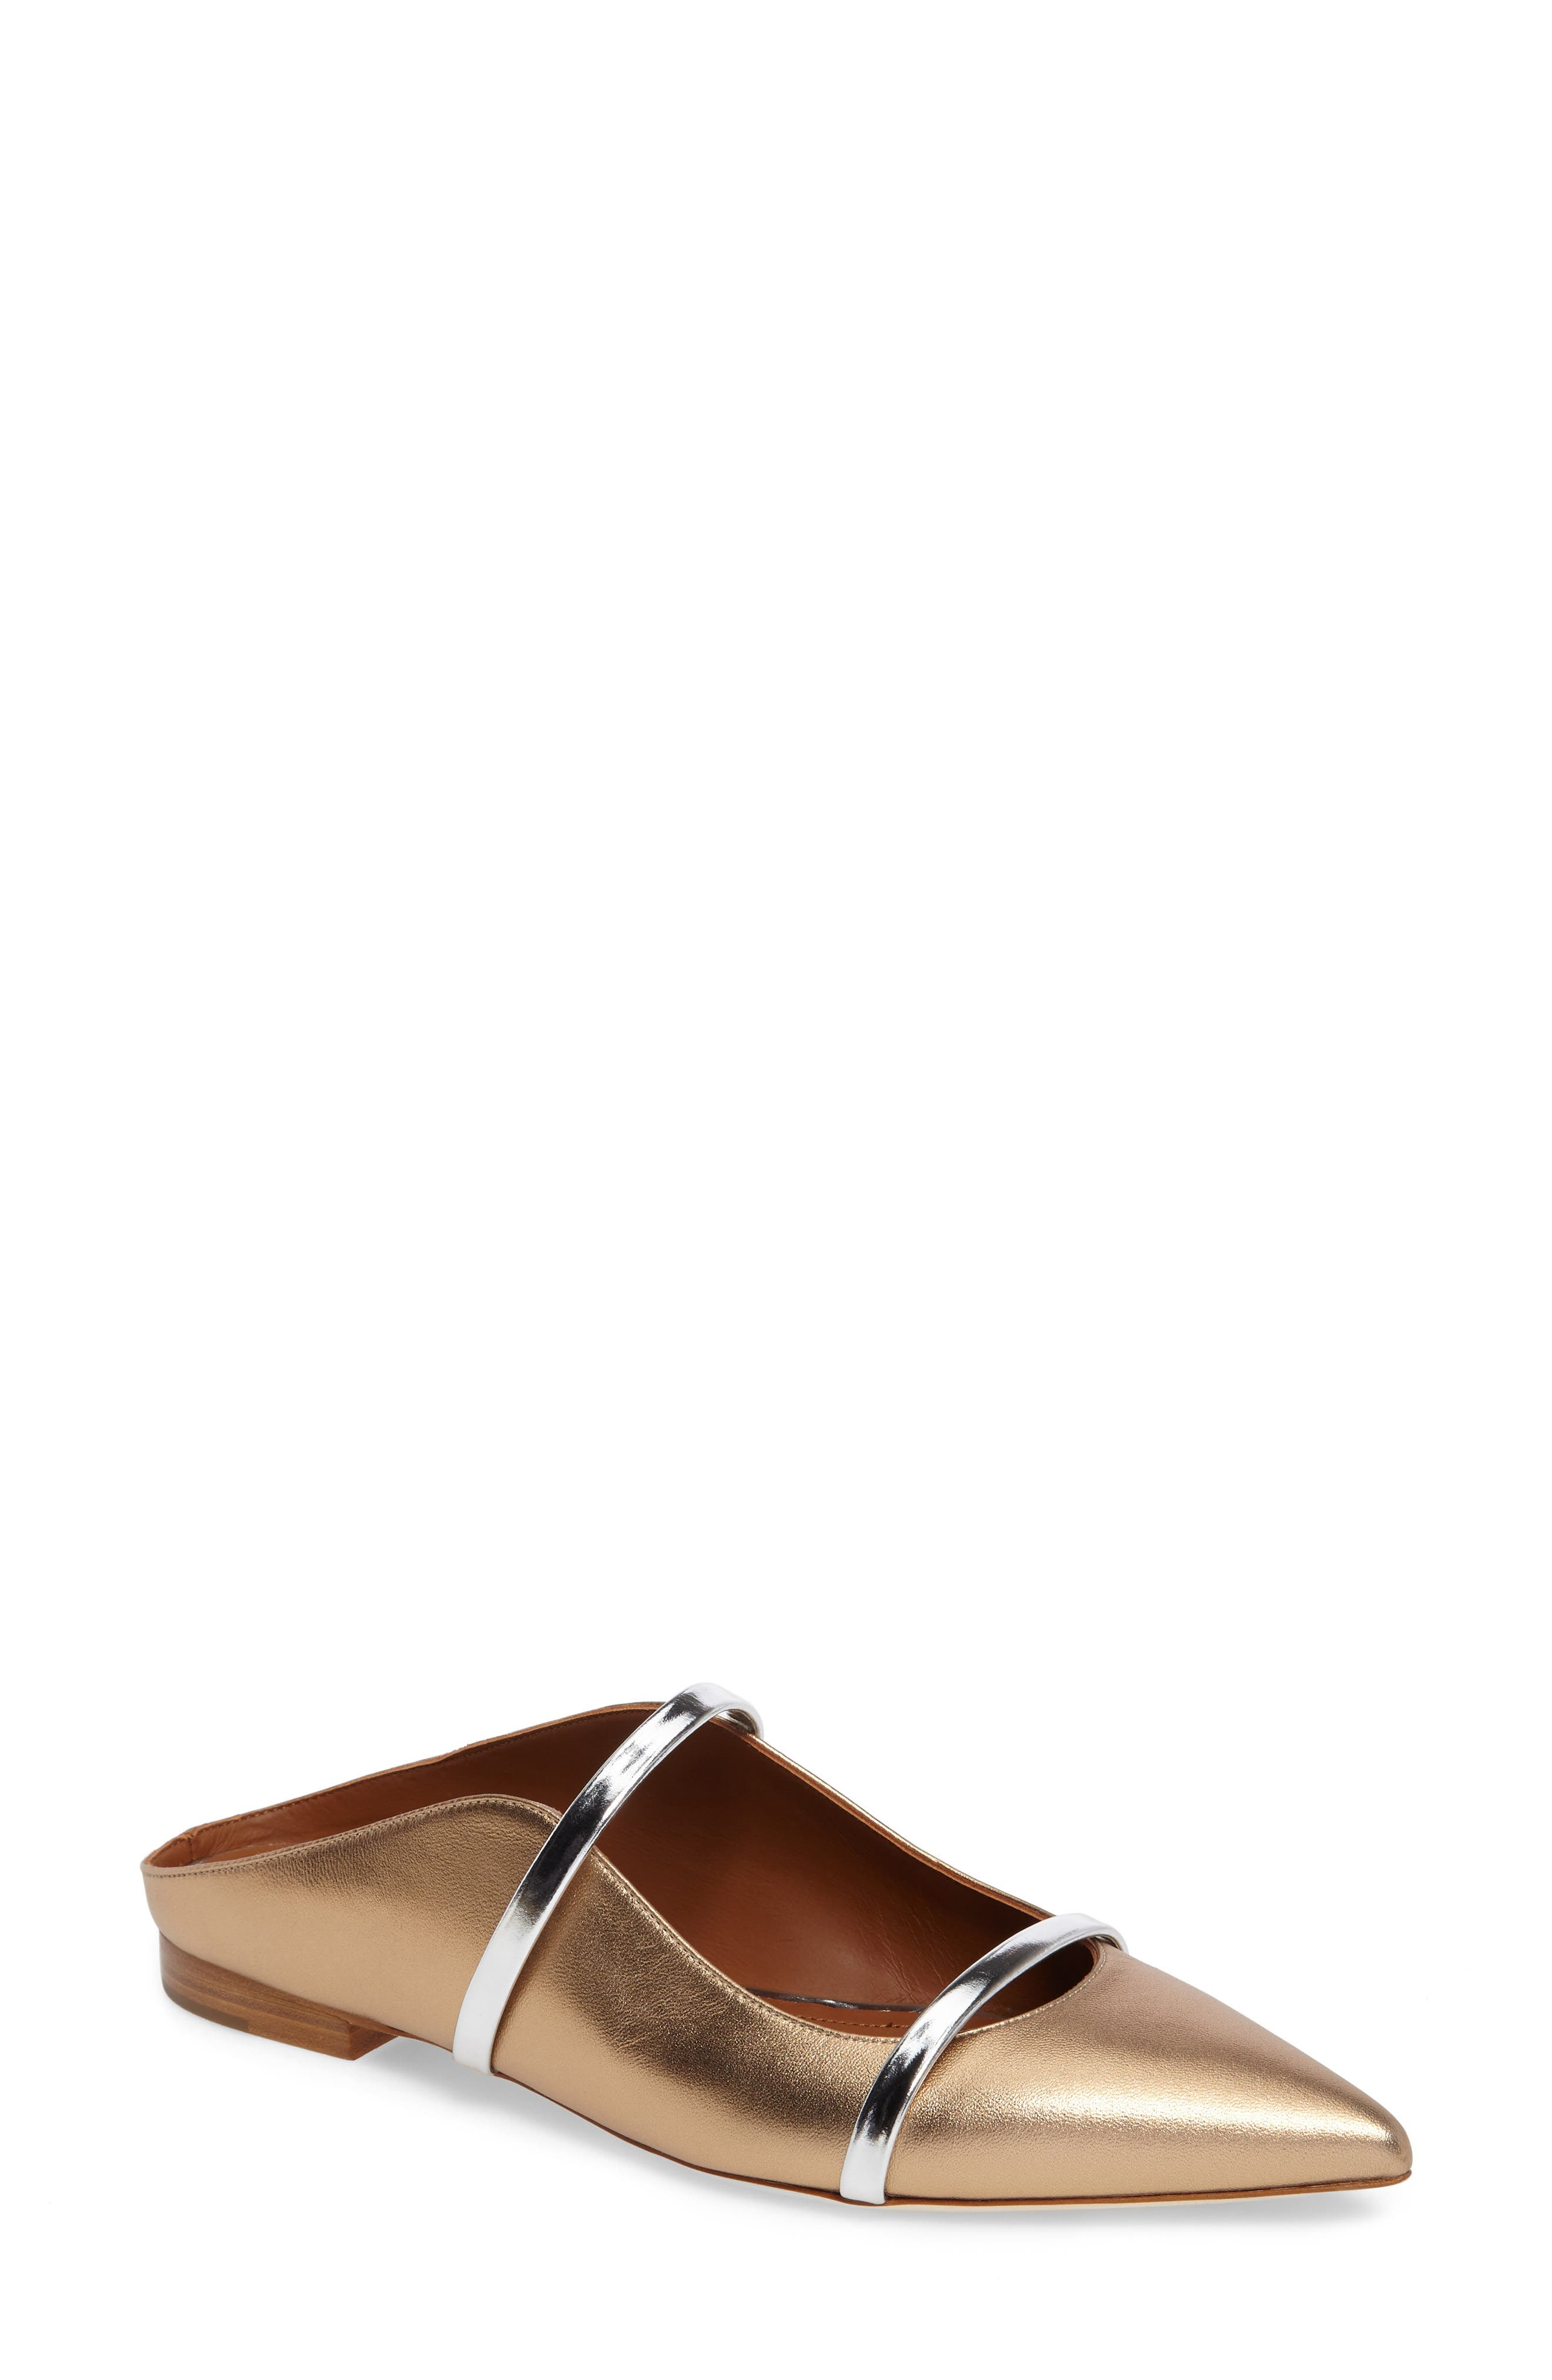 Maureen Pointy Toe Flat,                         Main,                         color, GOLD/ SILVER